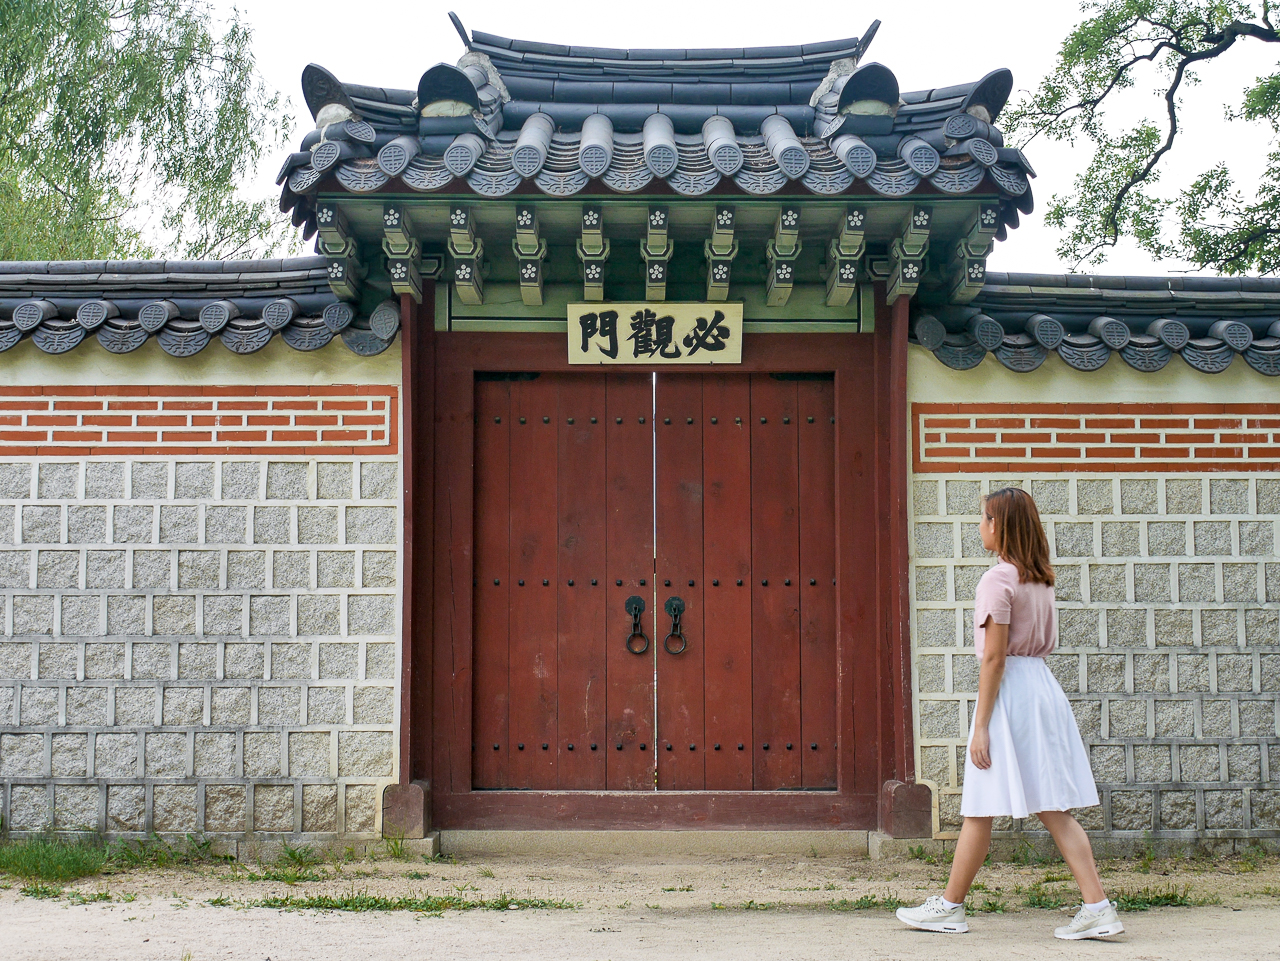 ootd and details of the gyeongbokgung palace in seoul